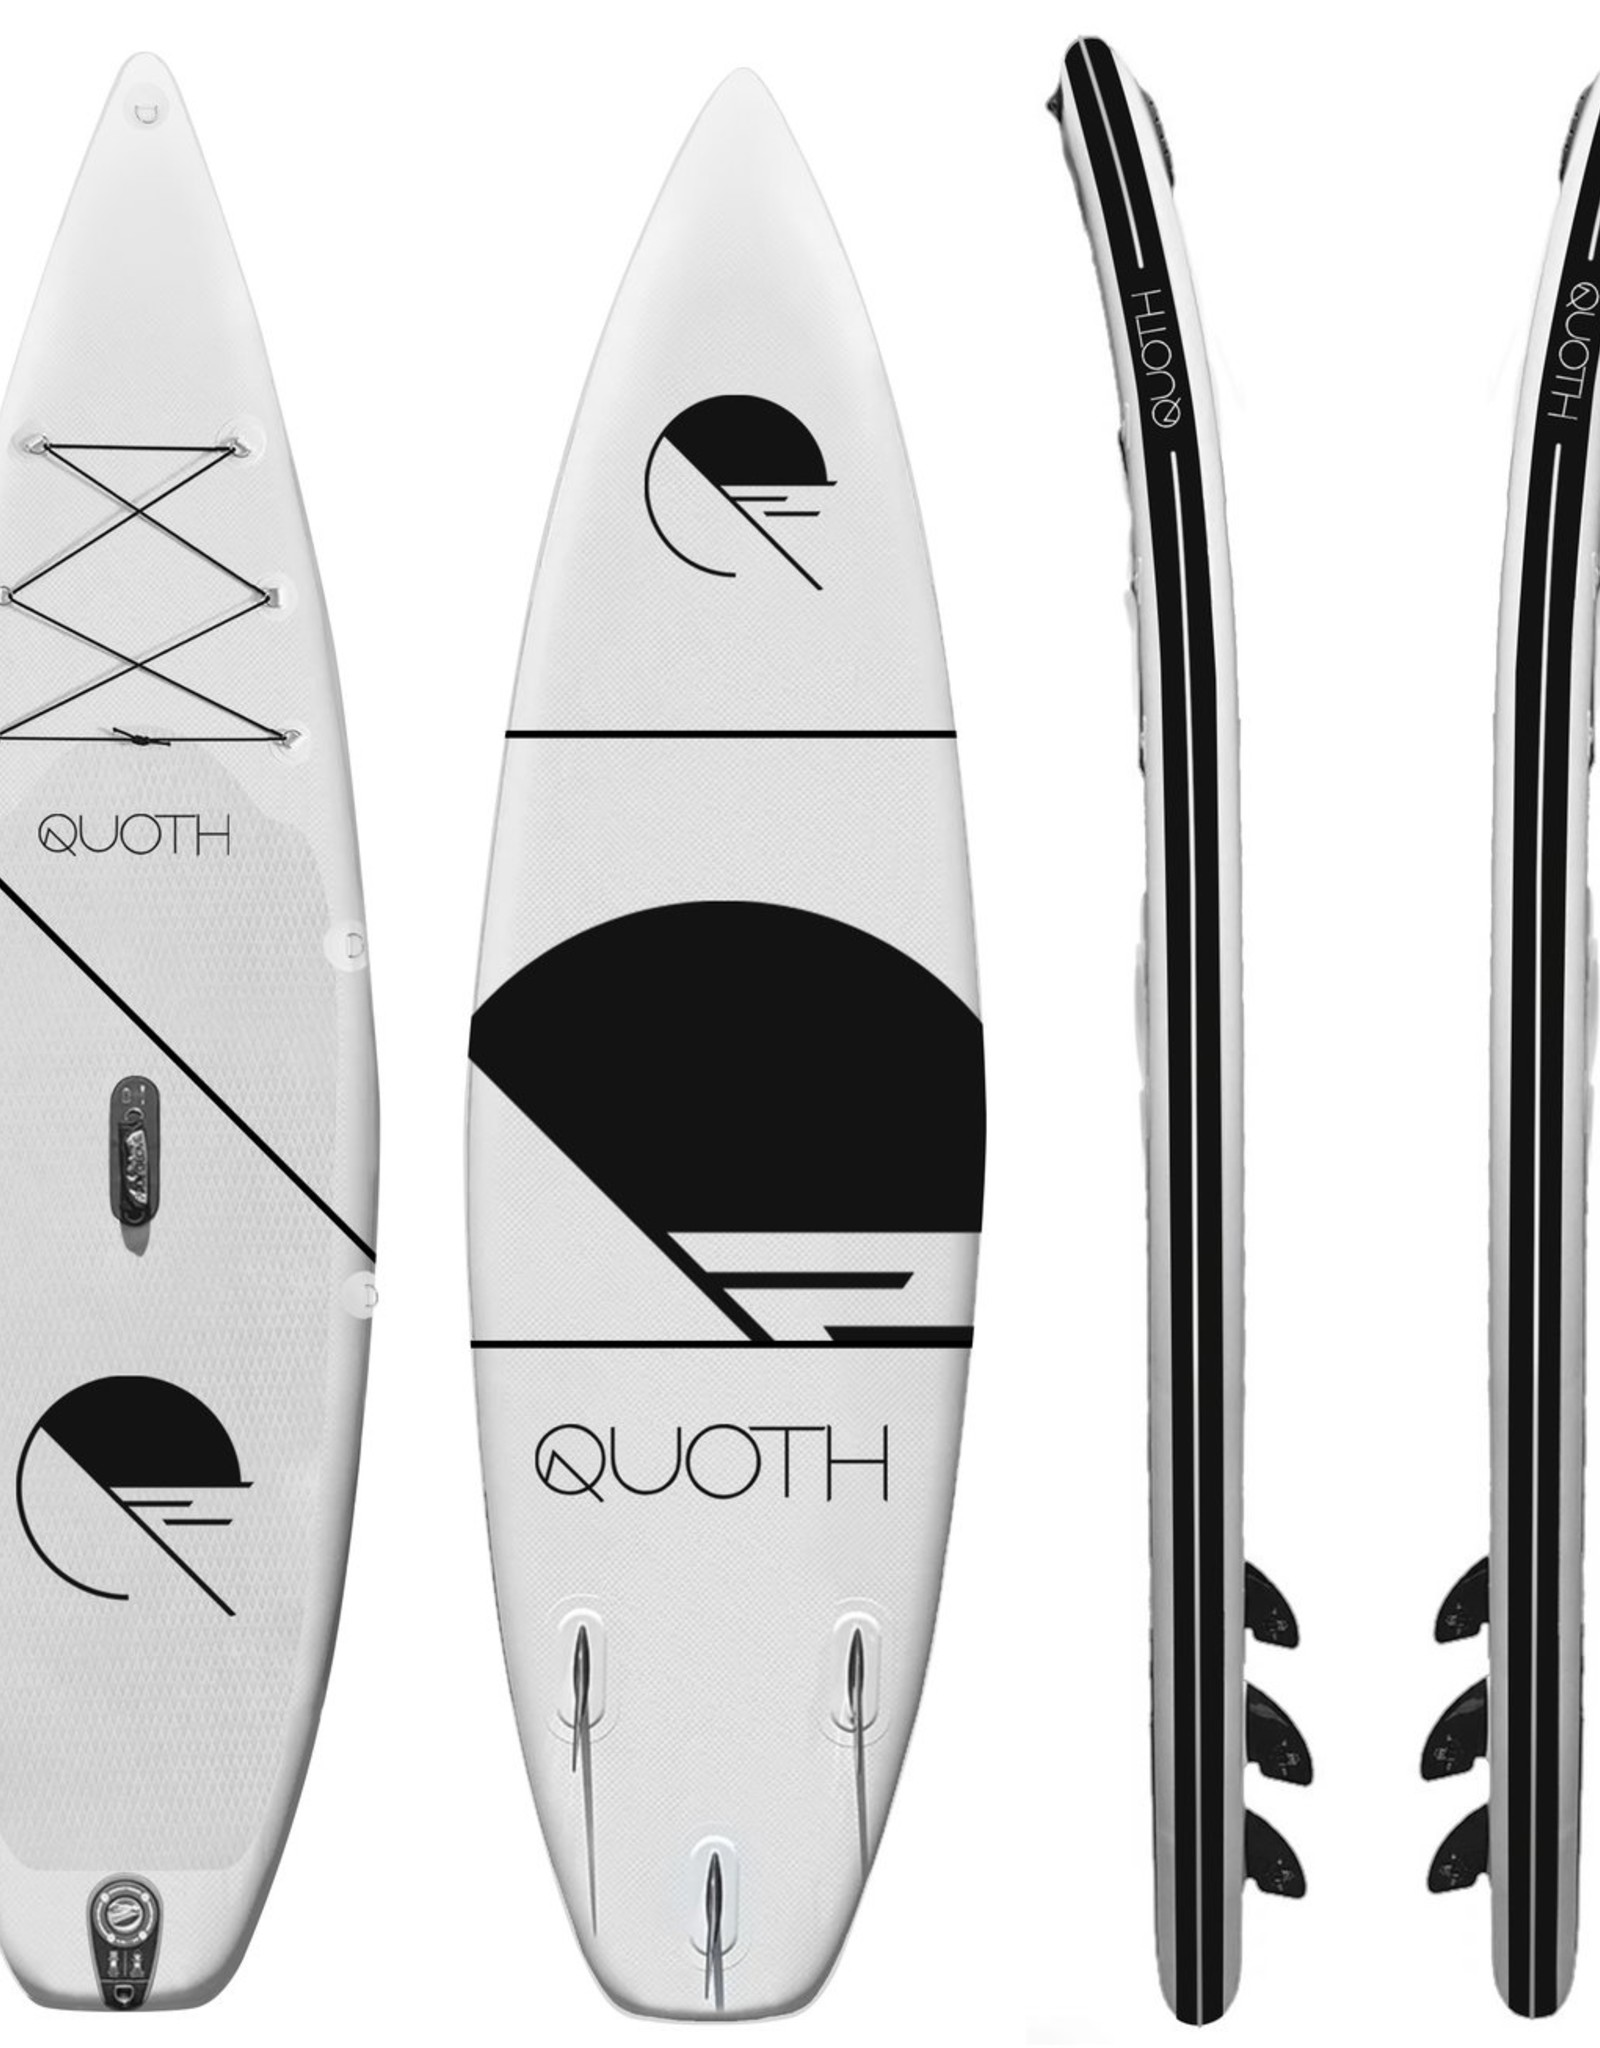 QUOTH Quoth Byrne Paddleboard Kit 11ft